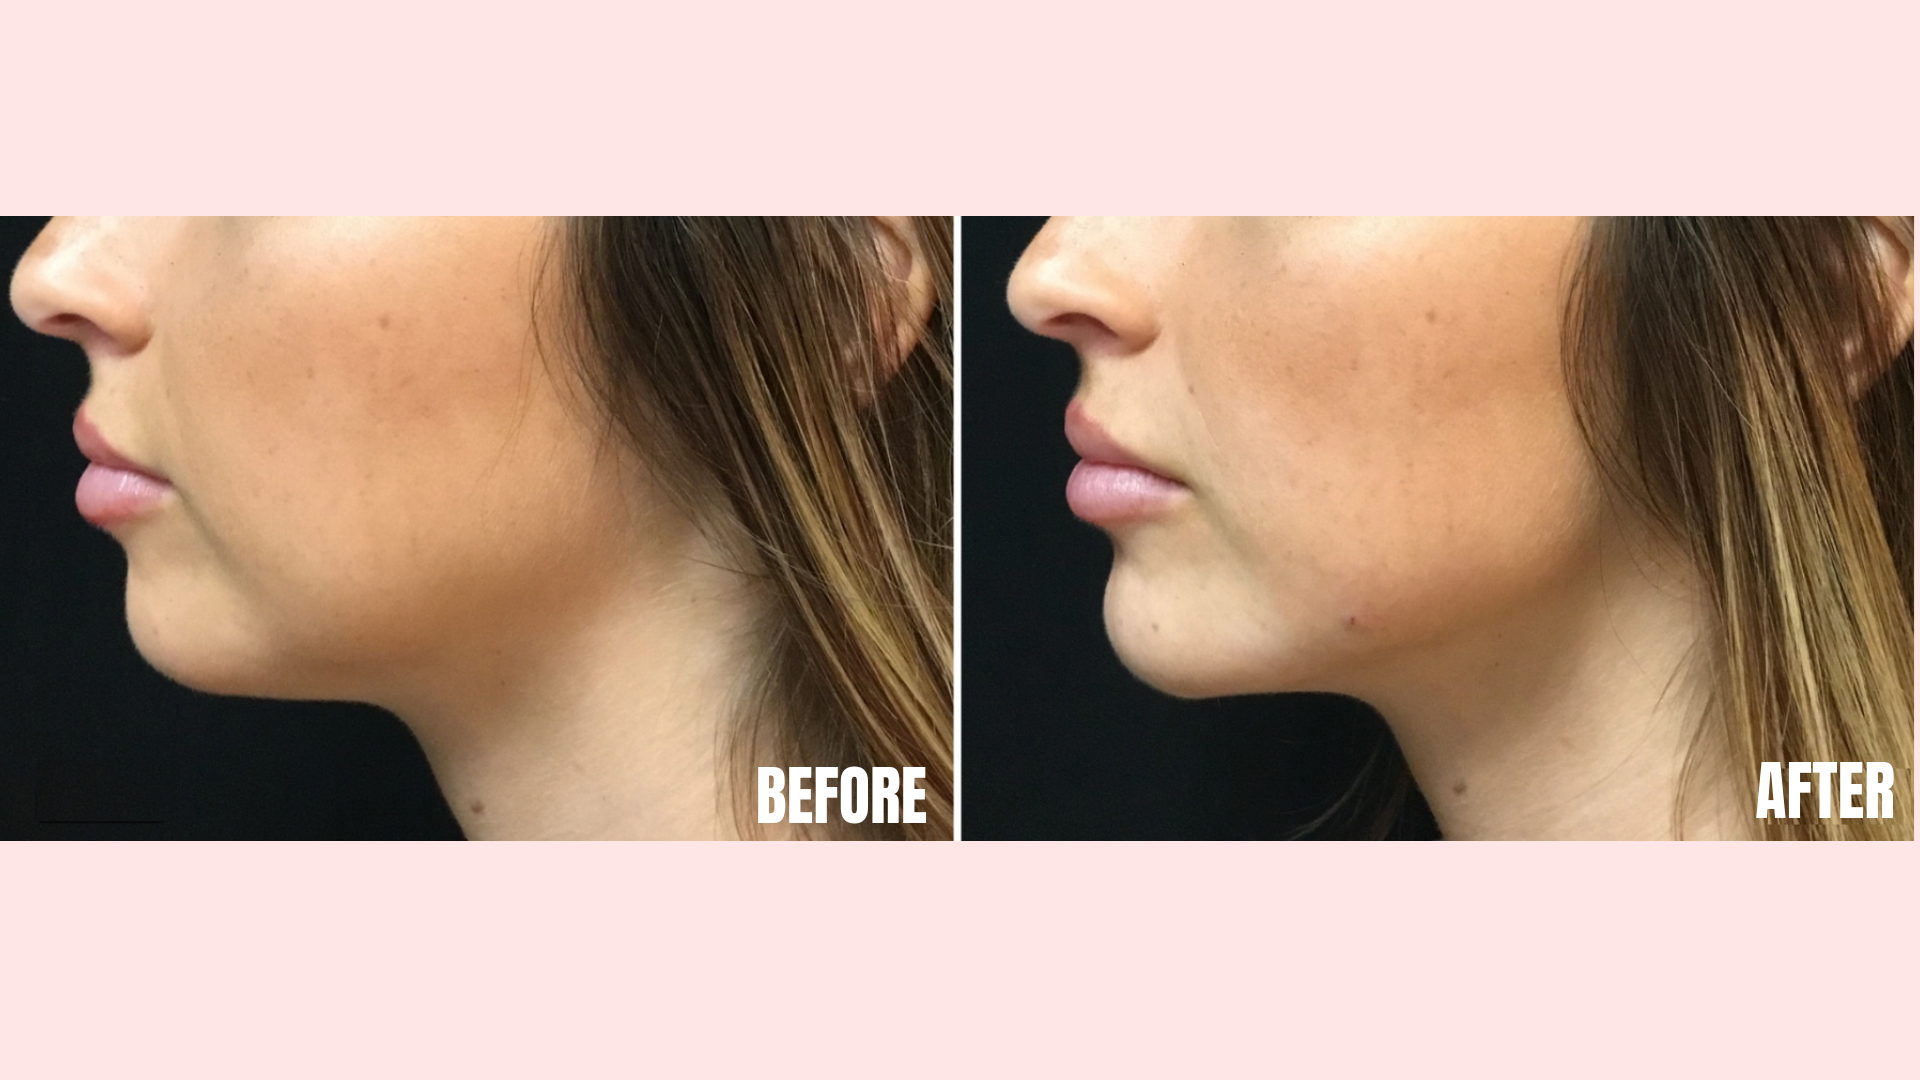 Filler in Chin and Jawline